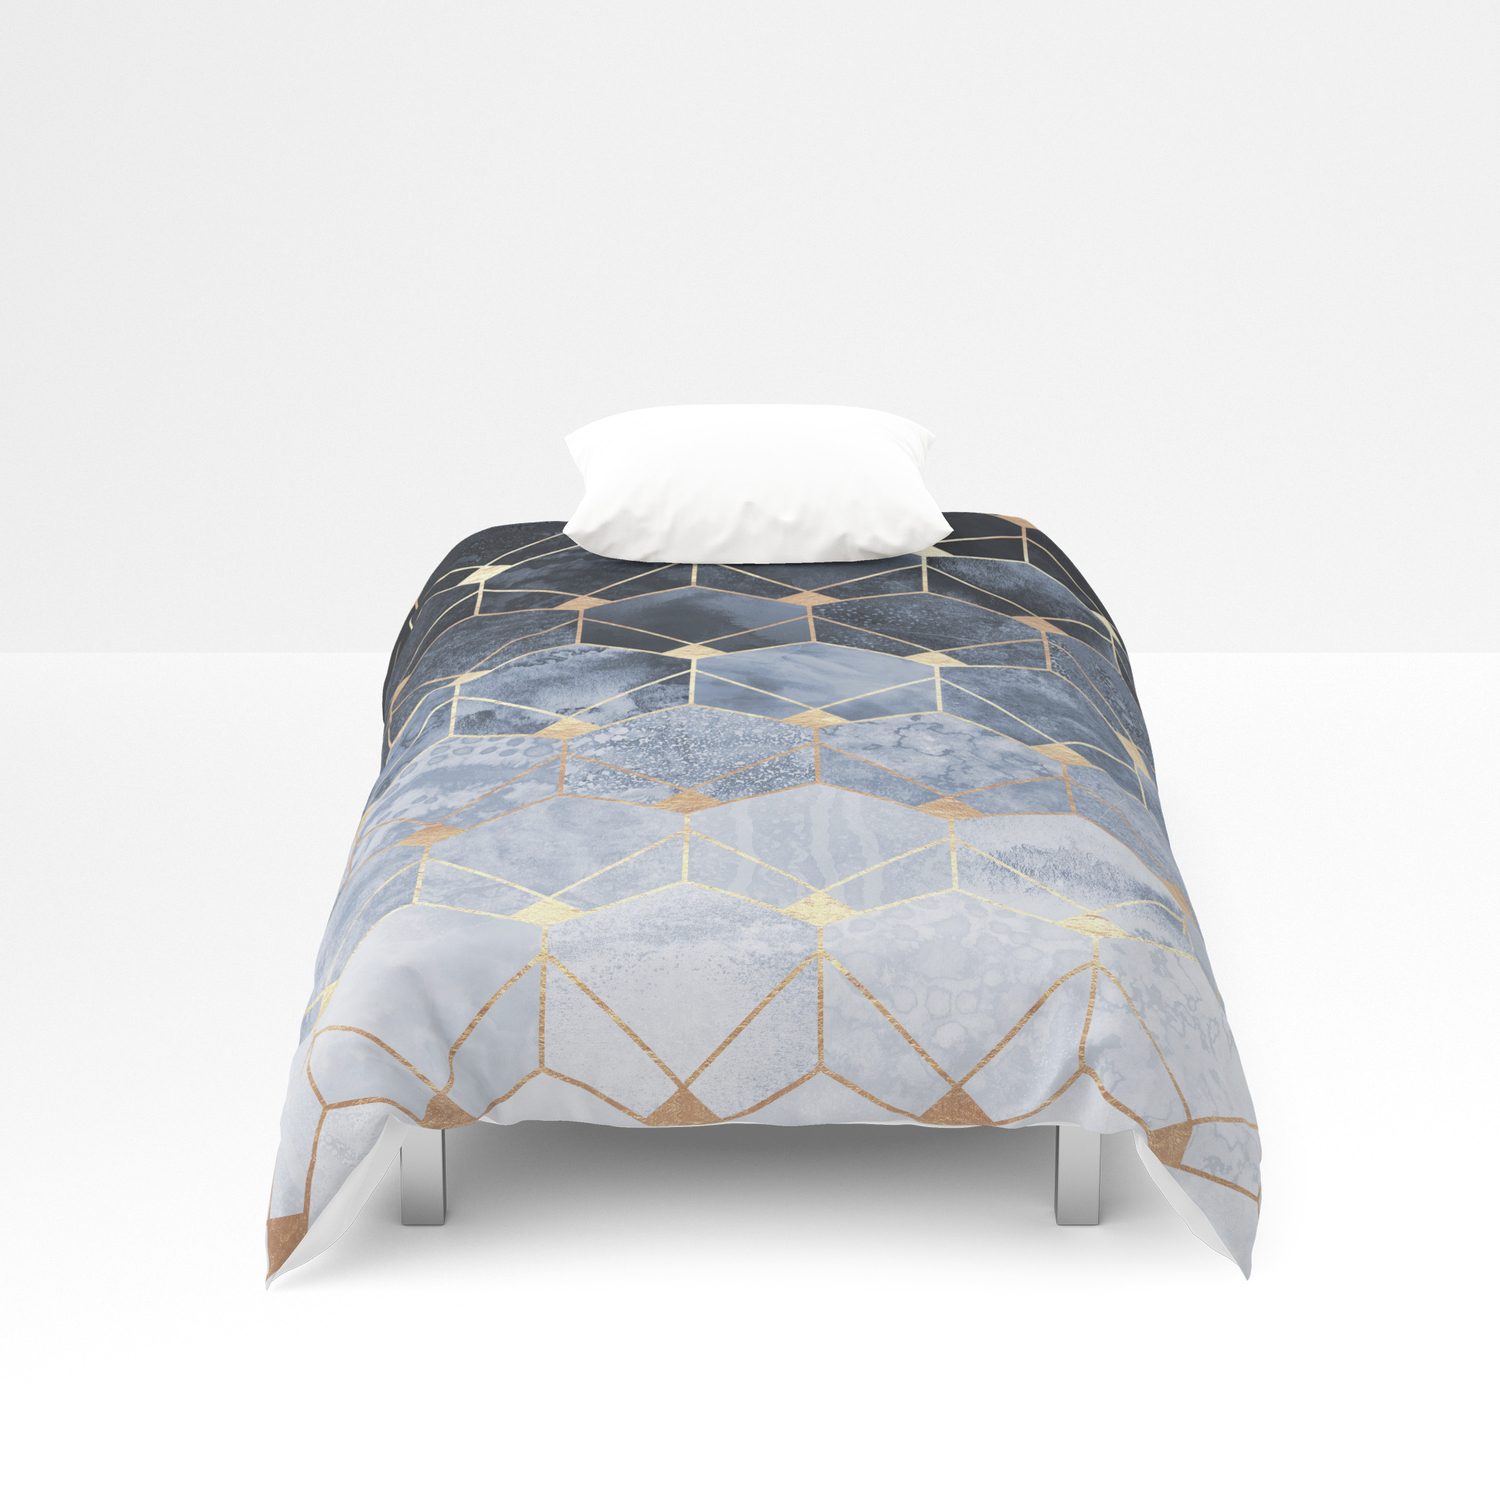 Blue Hexagons And Diamonds Duvet Cover For Blue Hexagons And Diamonds Credenzas (View 3 of 20)